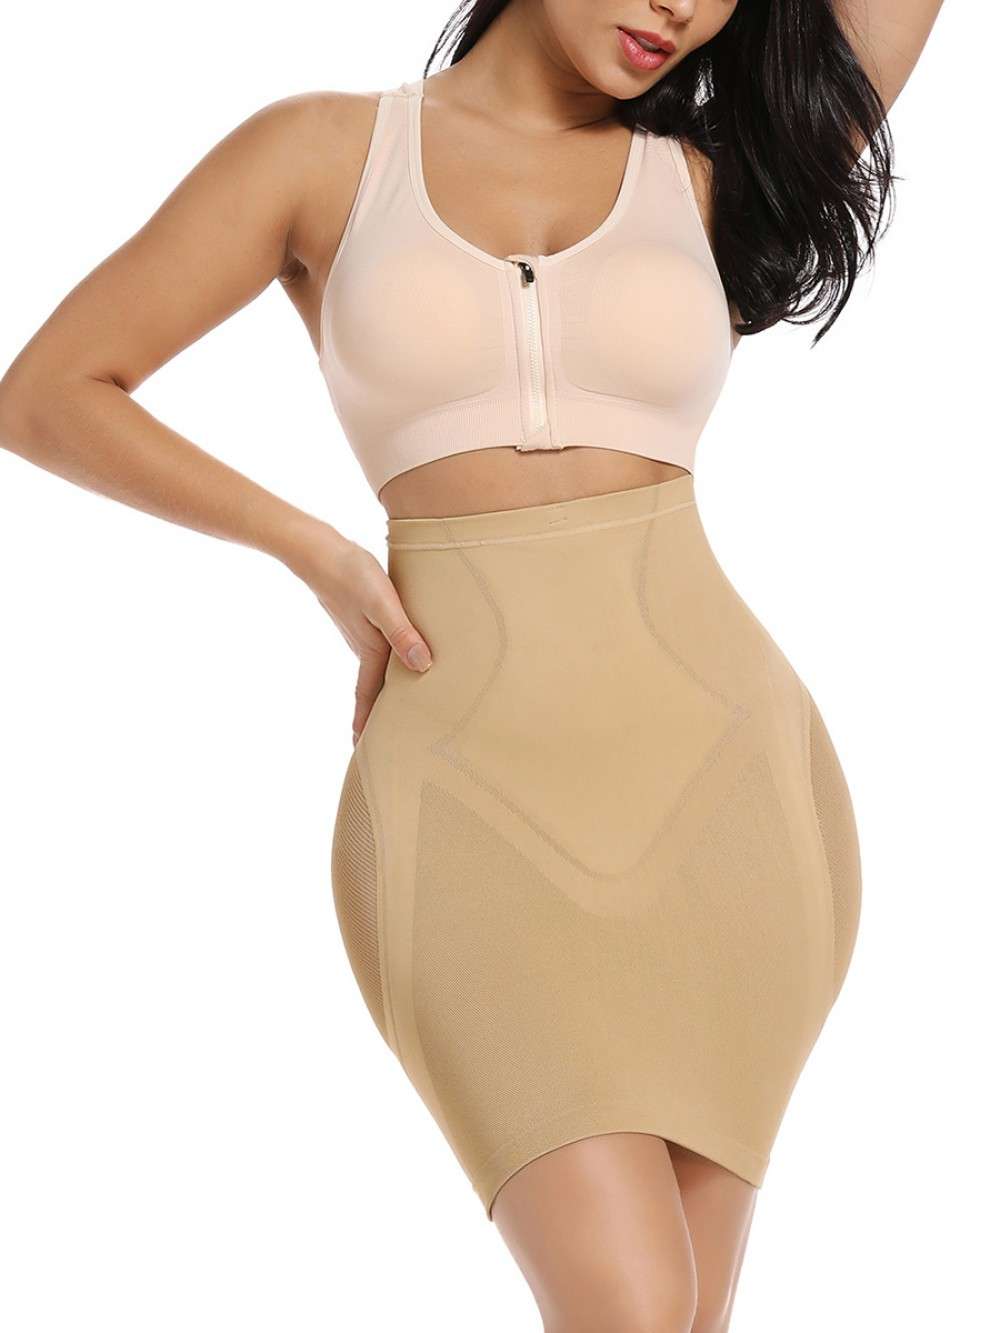 Skin Flat Tummy High Rise Lace Butt Lifter Sleek Smoothers